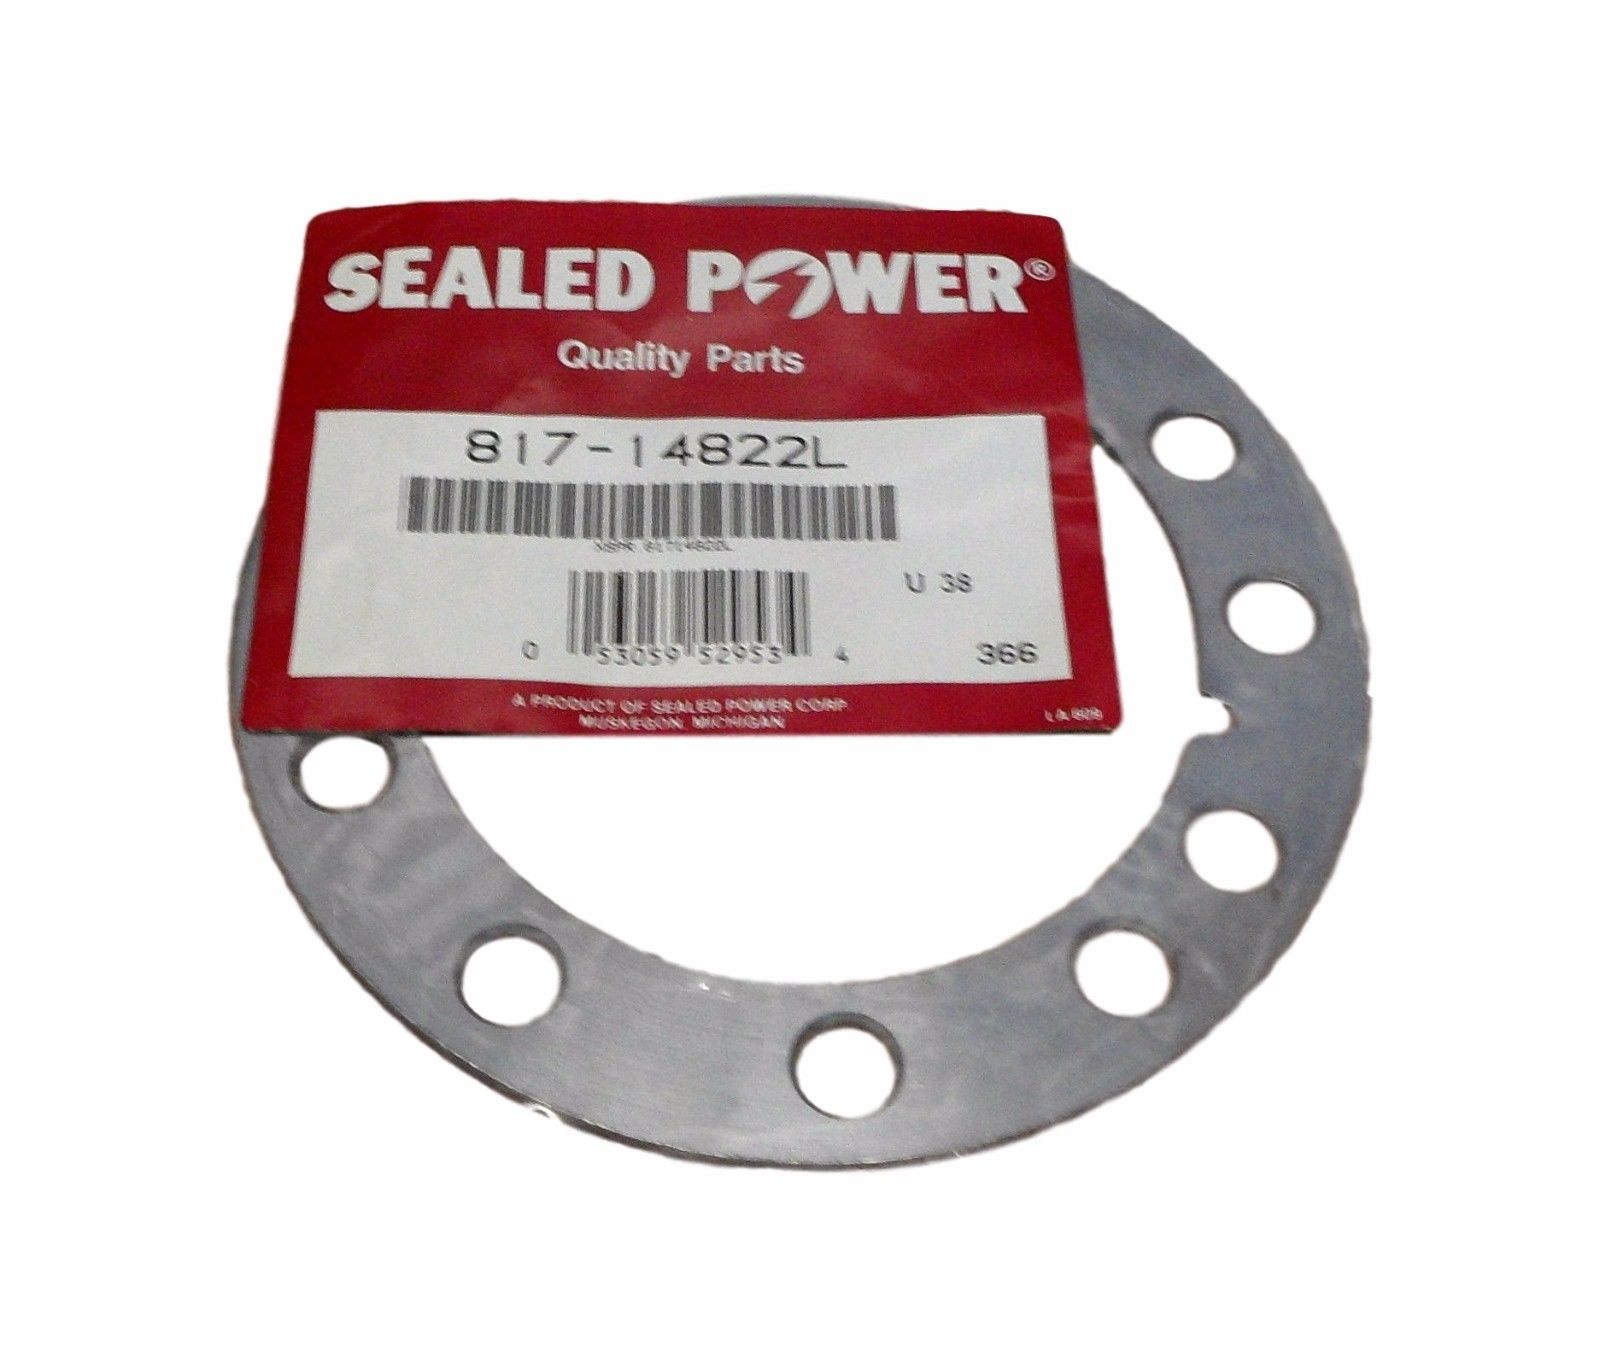 Sealed Power  Metal Camber Shim 817-14821D 81714821D Free Shipping Brand New